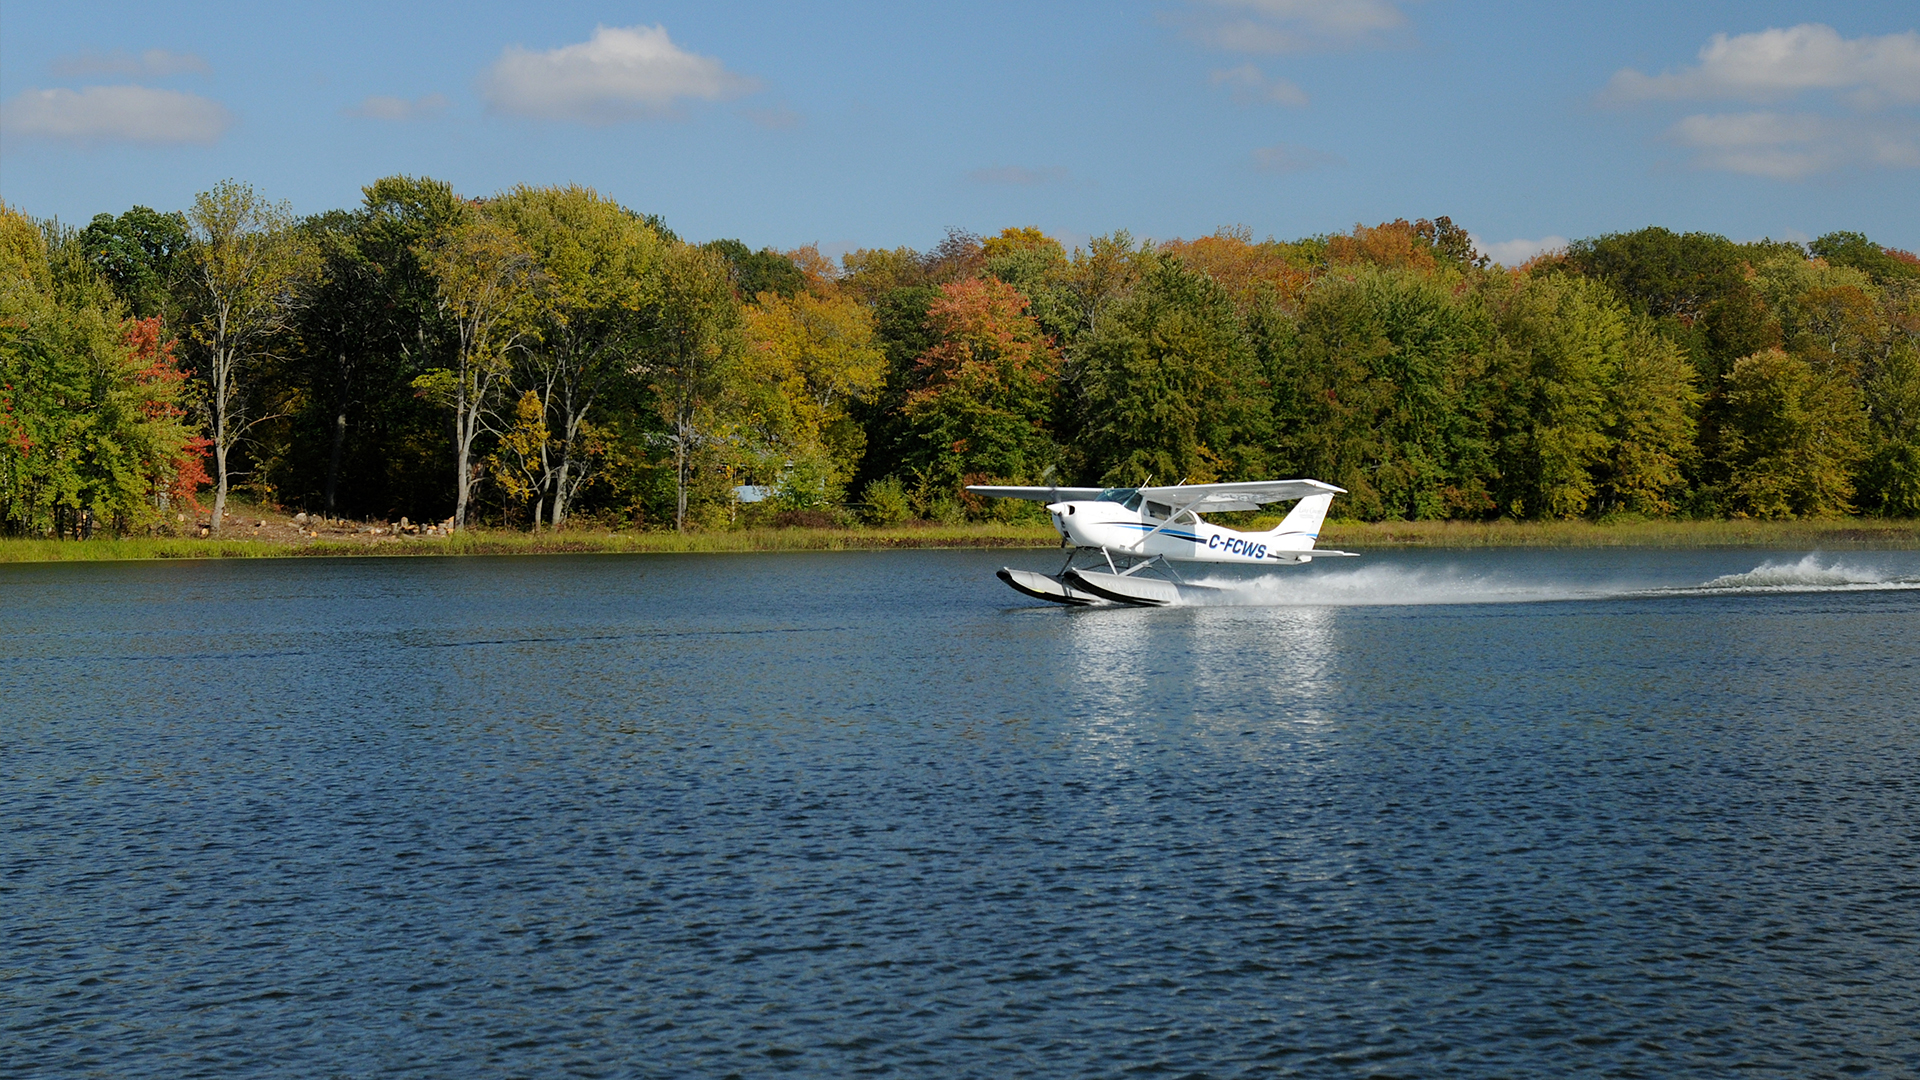 lake country air - Tour These Driving Routes This Fall